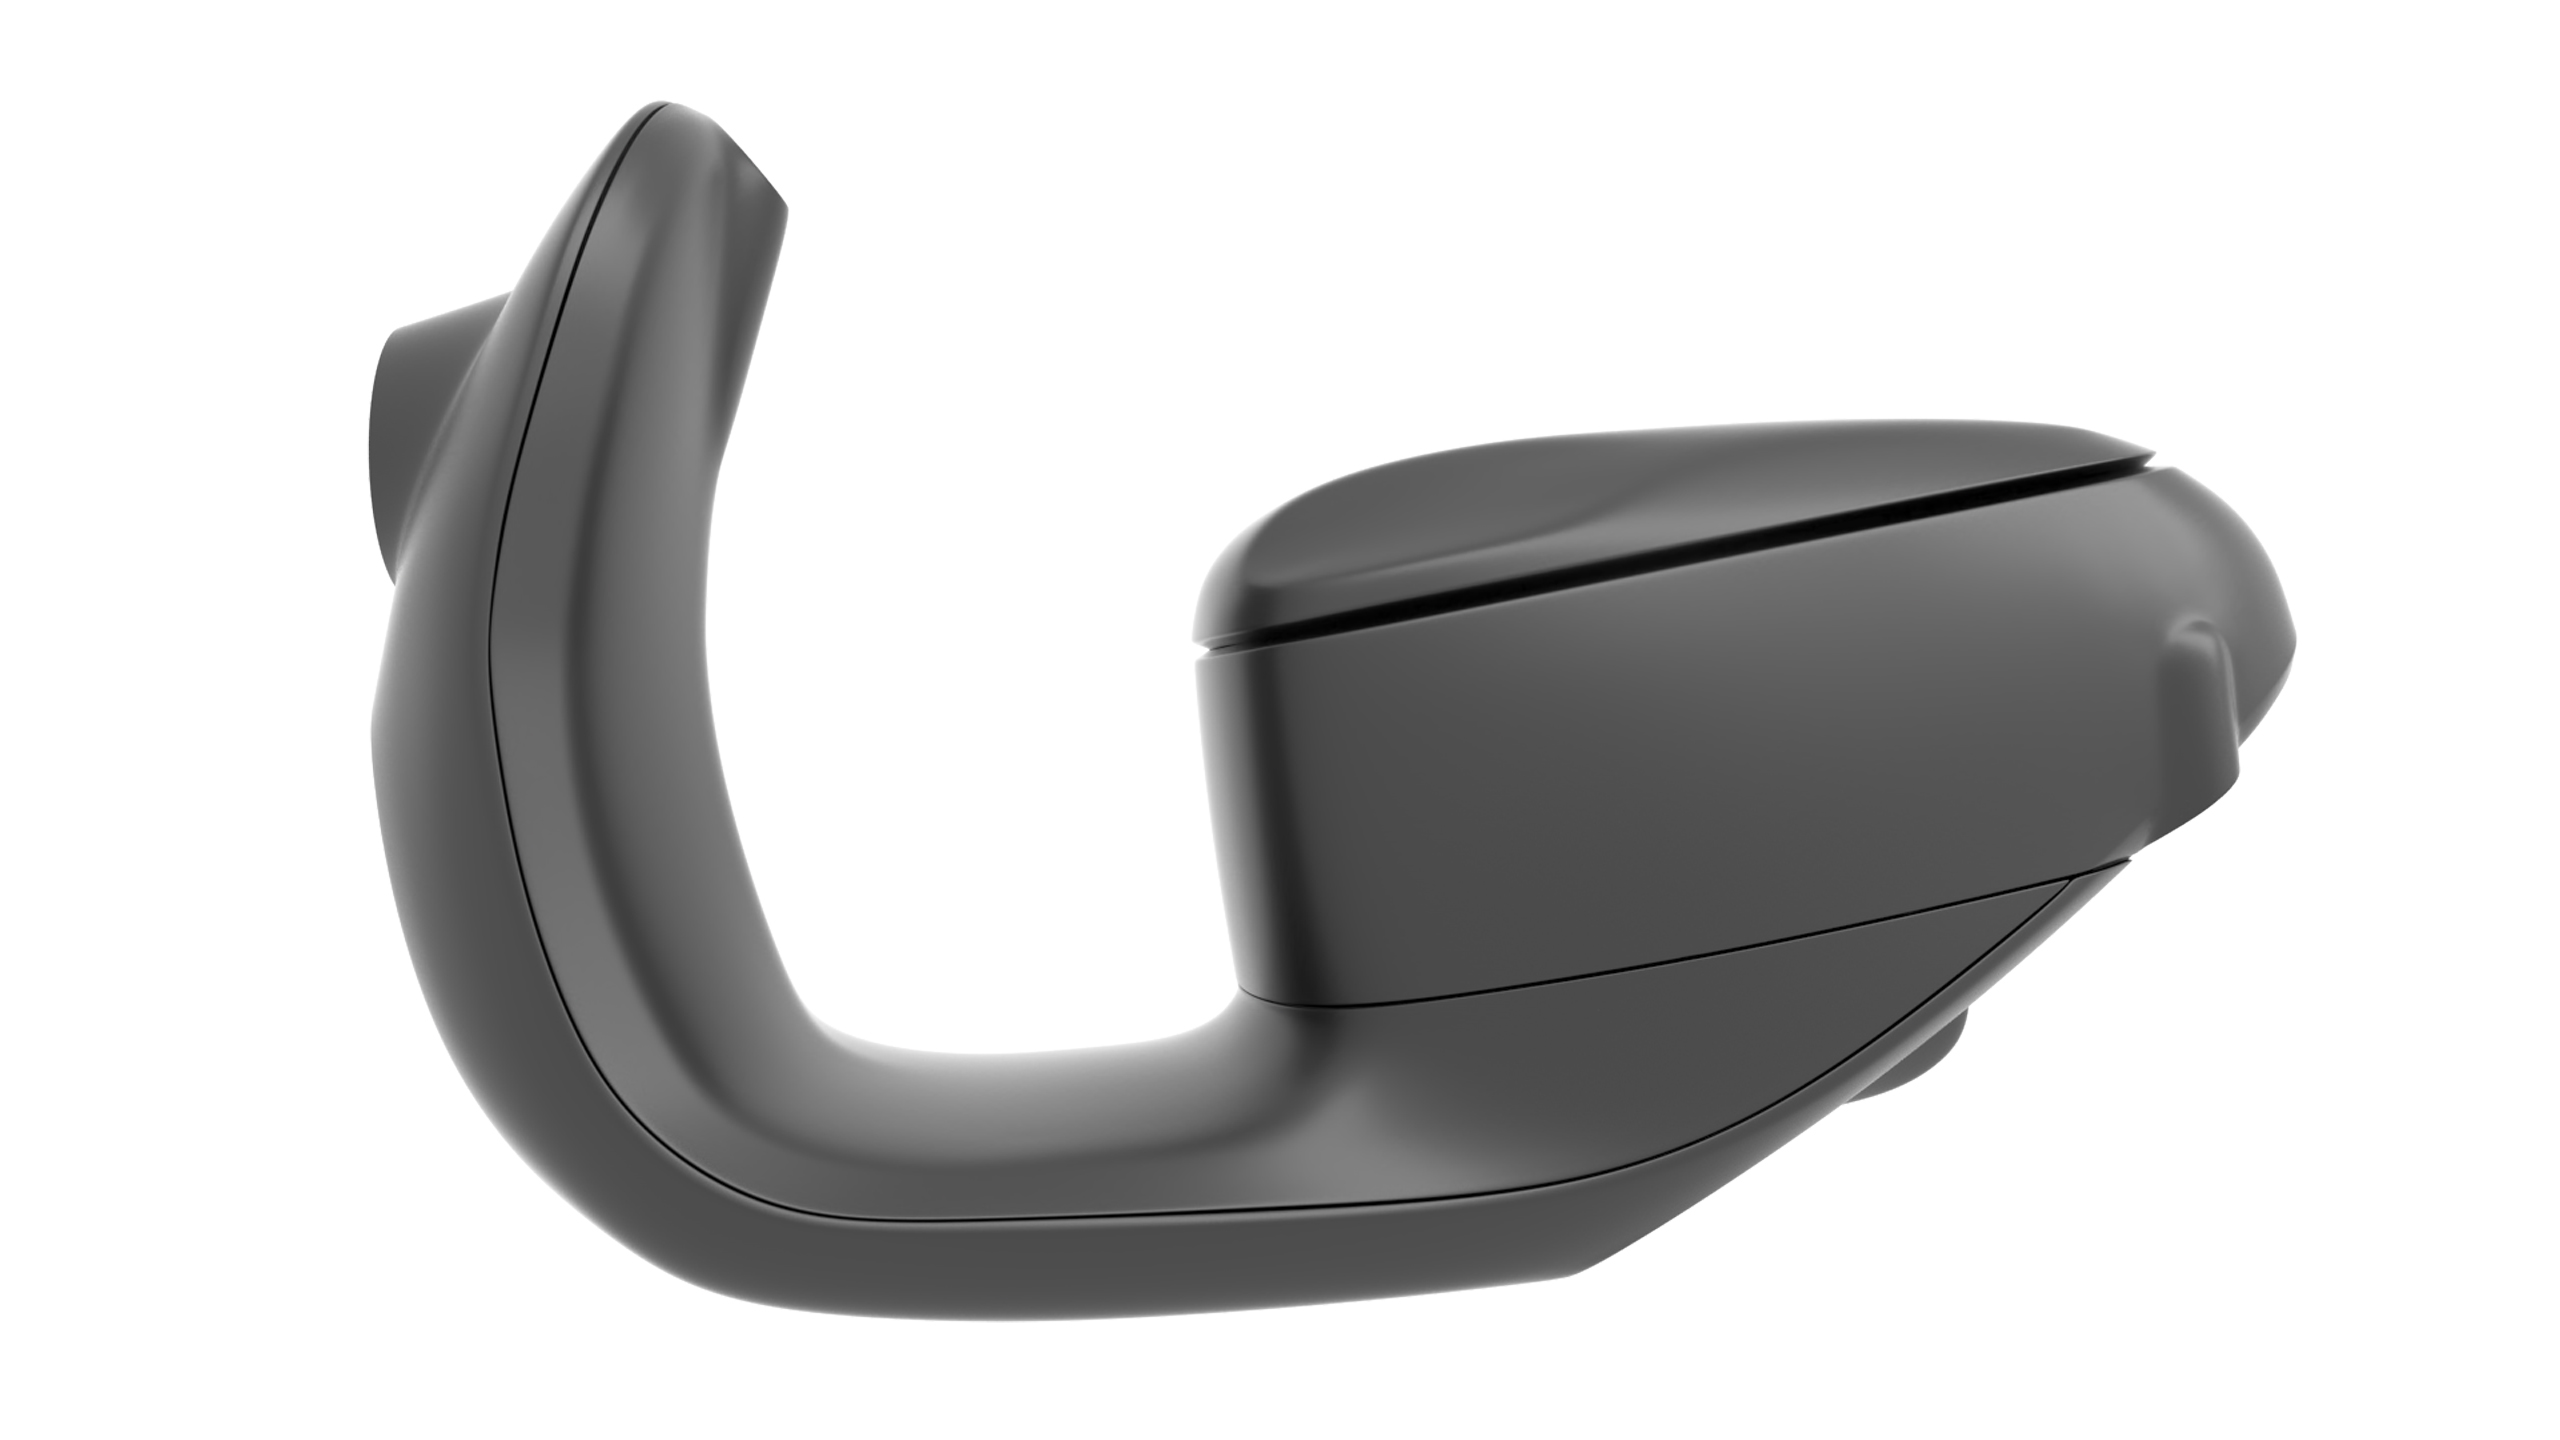 black scooter body detail view on white background rendering side